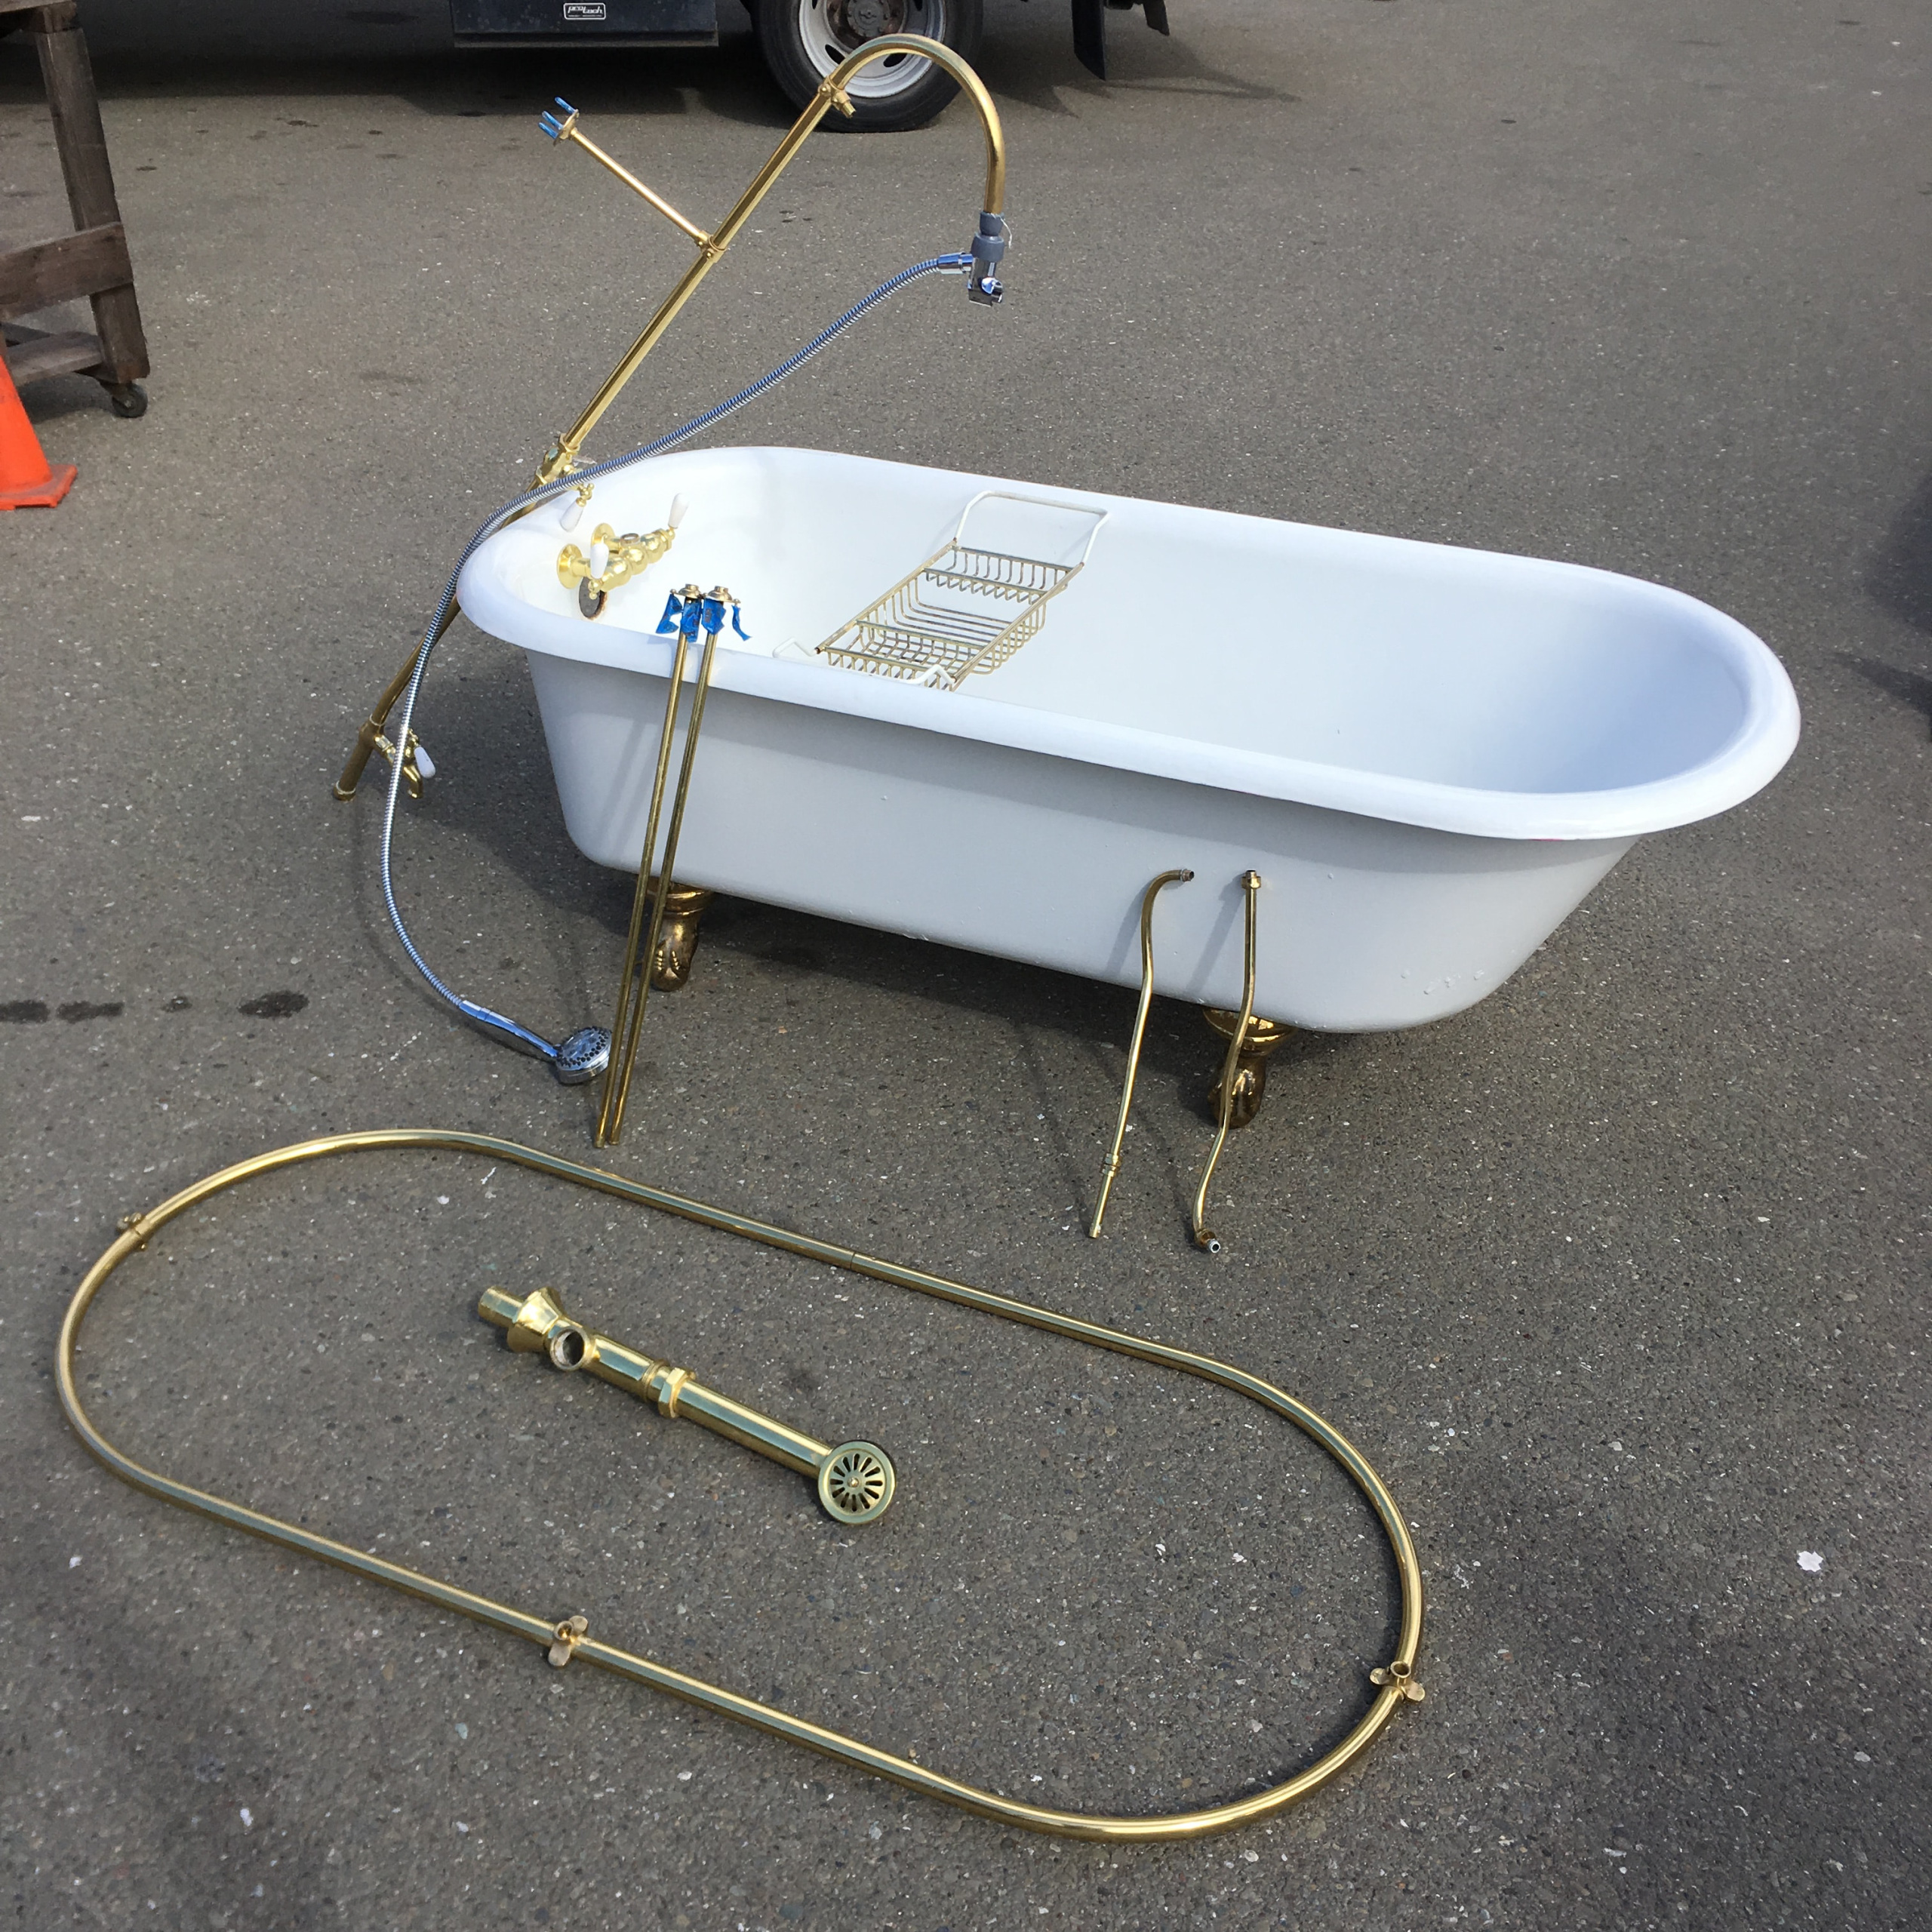 5 1 2 Ft Claw Foot Tub W Shower Ring Hardware